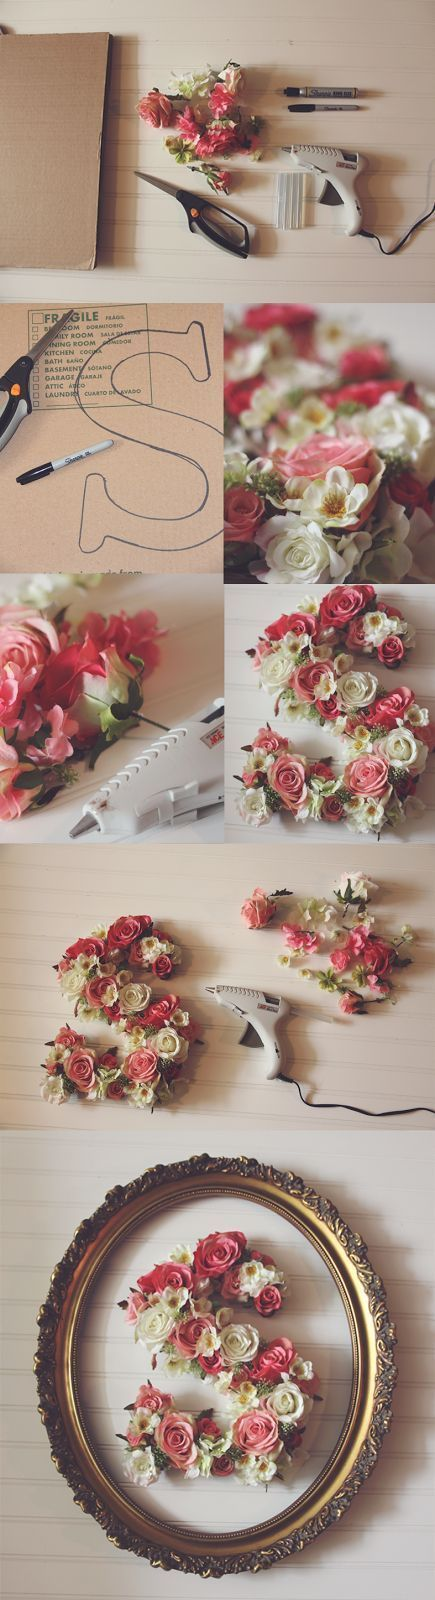 Photo of Simply extraordinary DIY letter decor here to show the aesthetic values of …